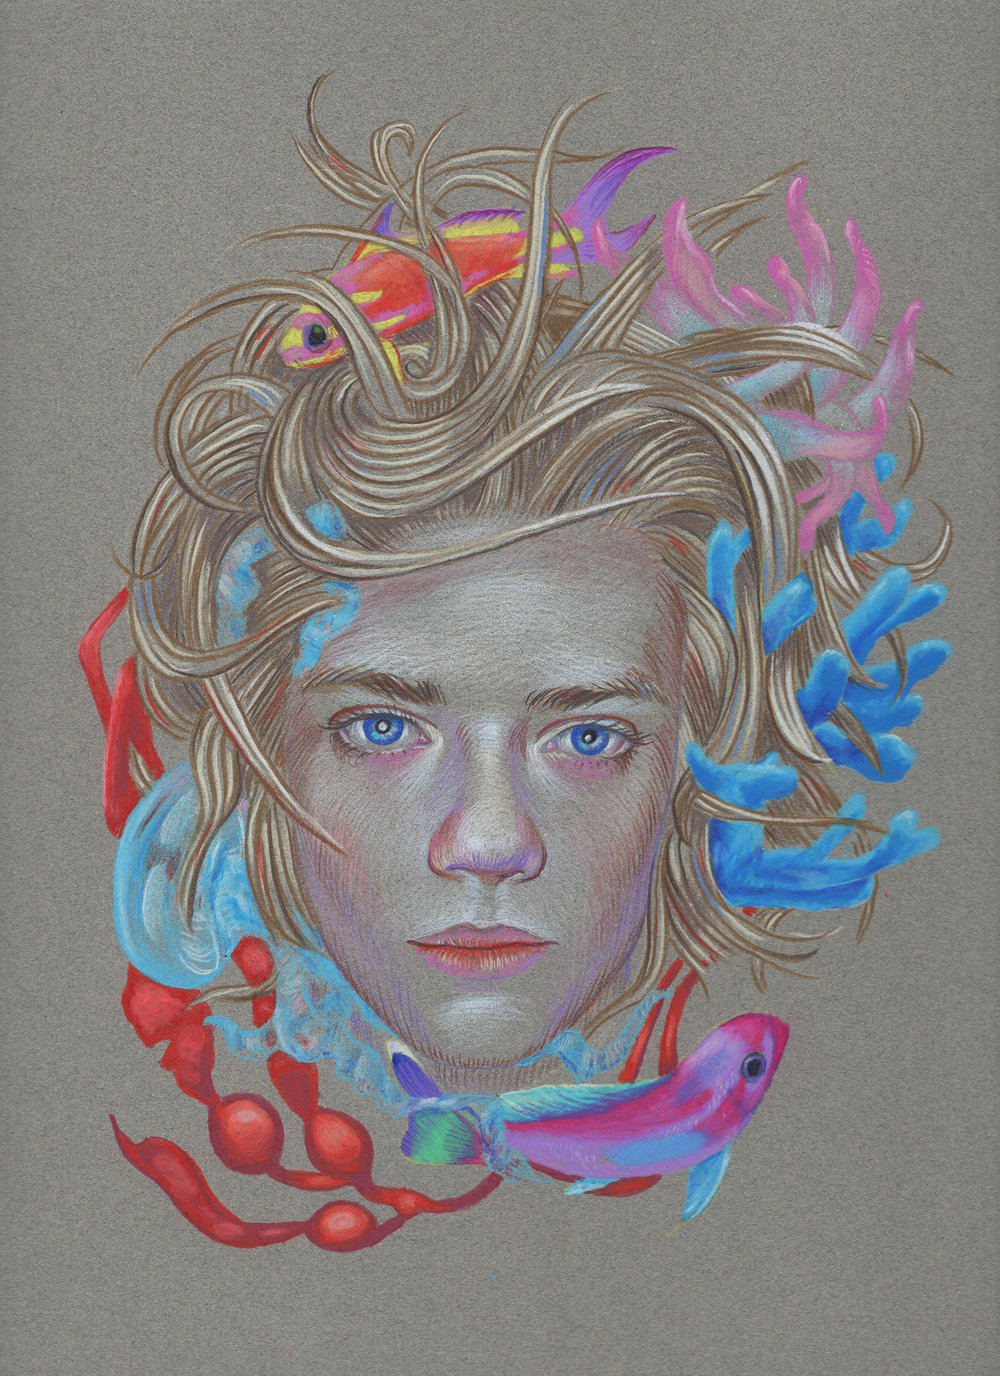 Copy of Untitled. Color pencil on paper. 12 x 9 inches.